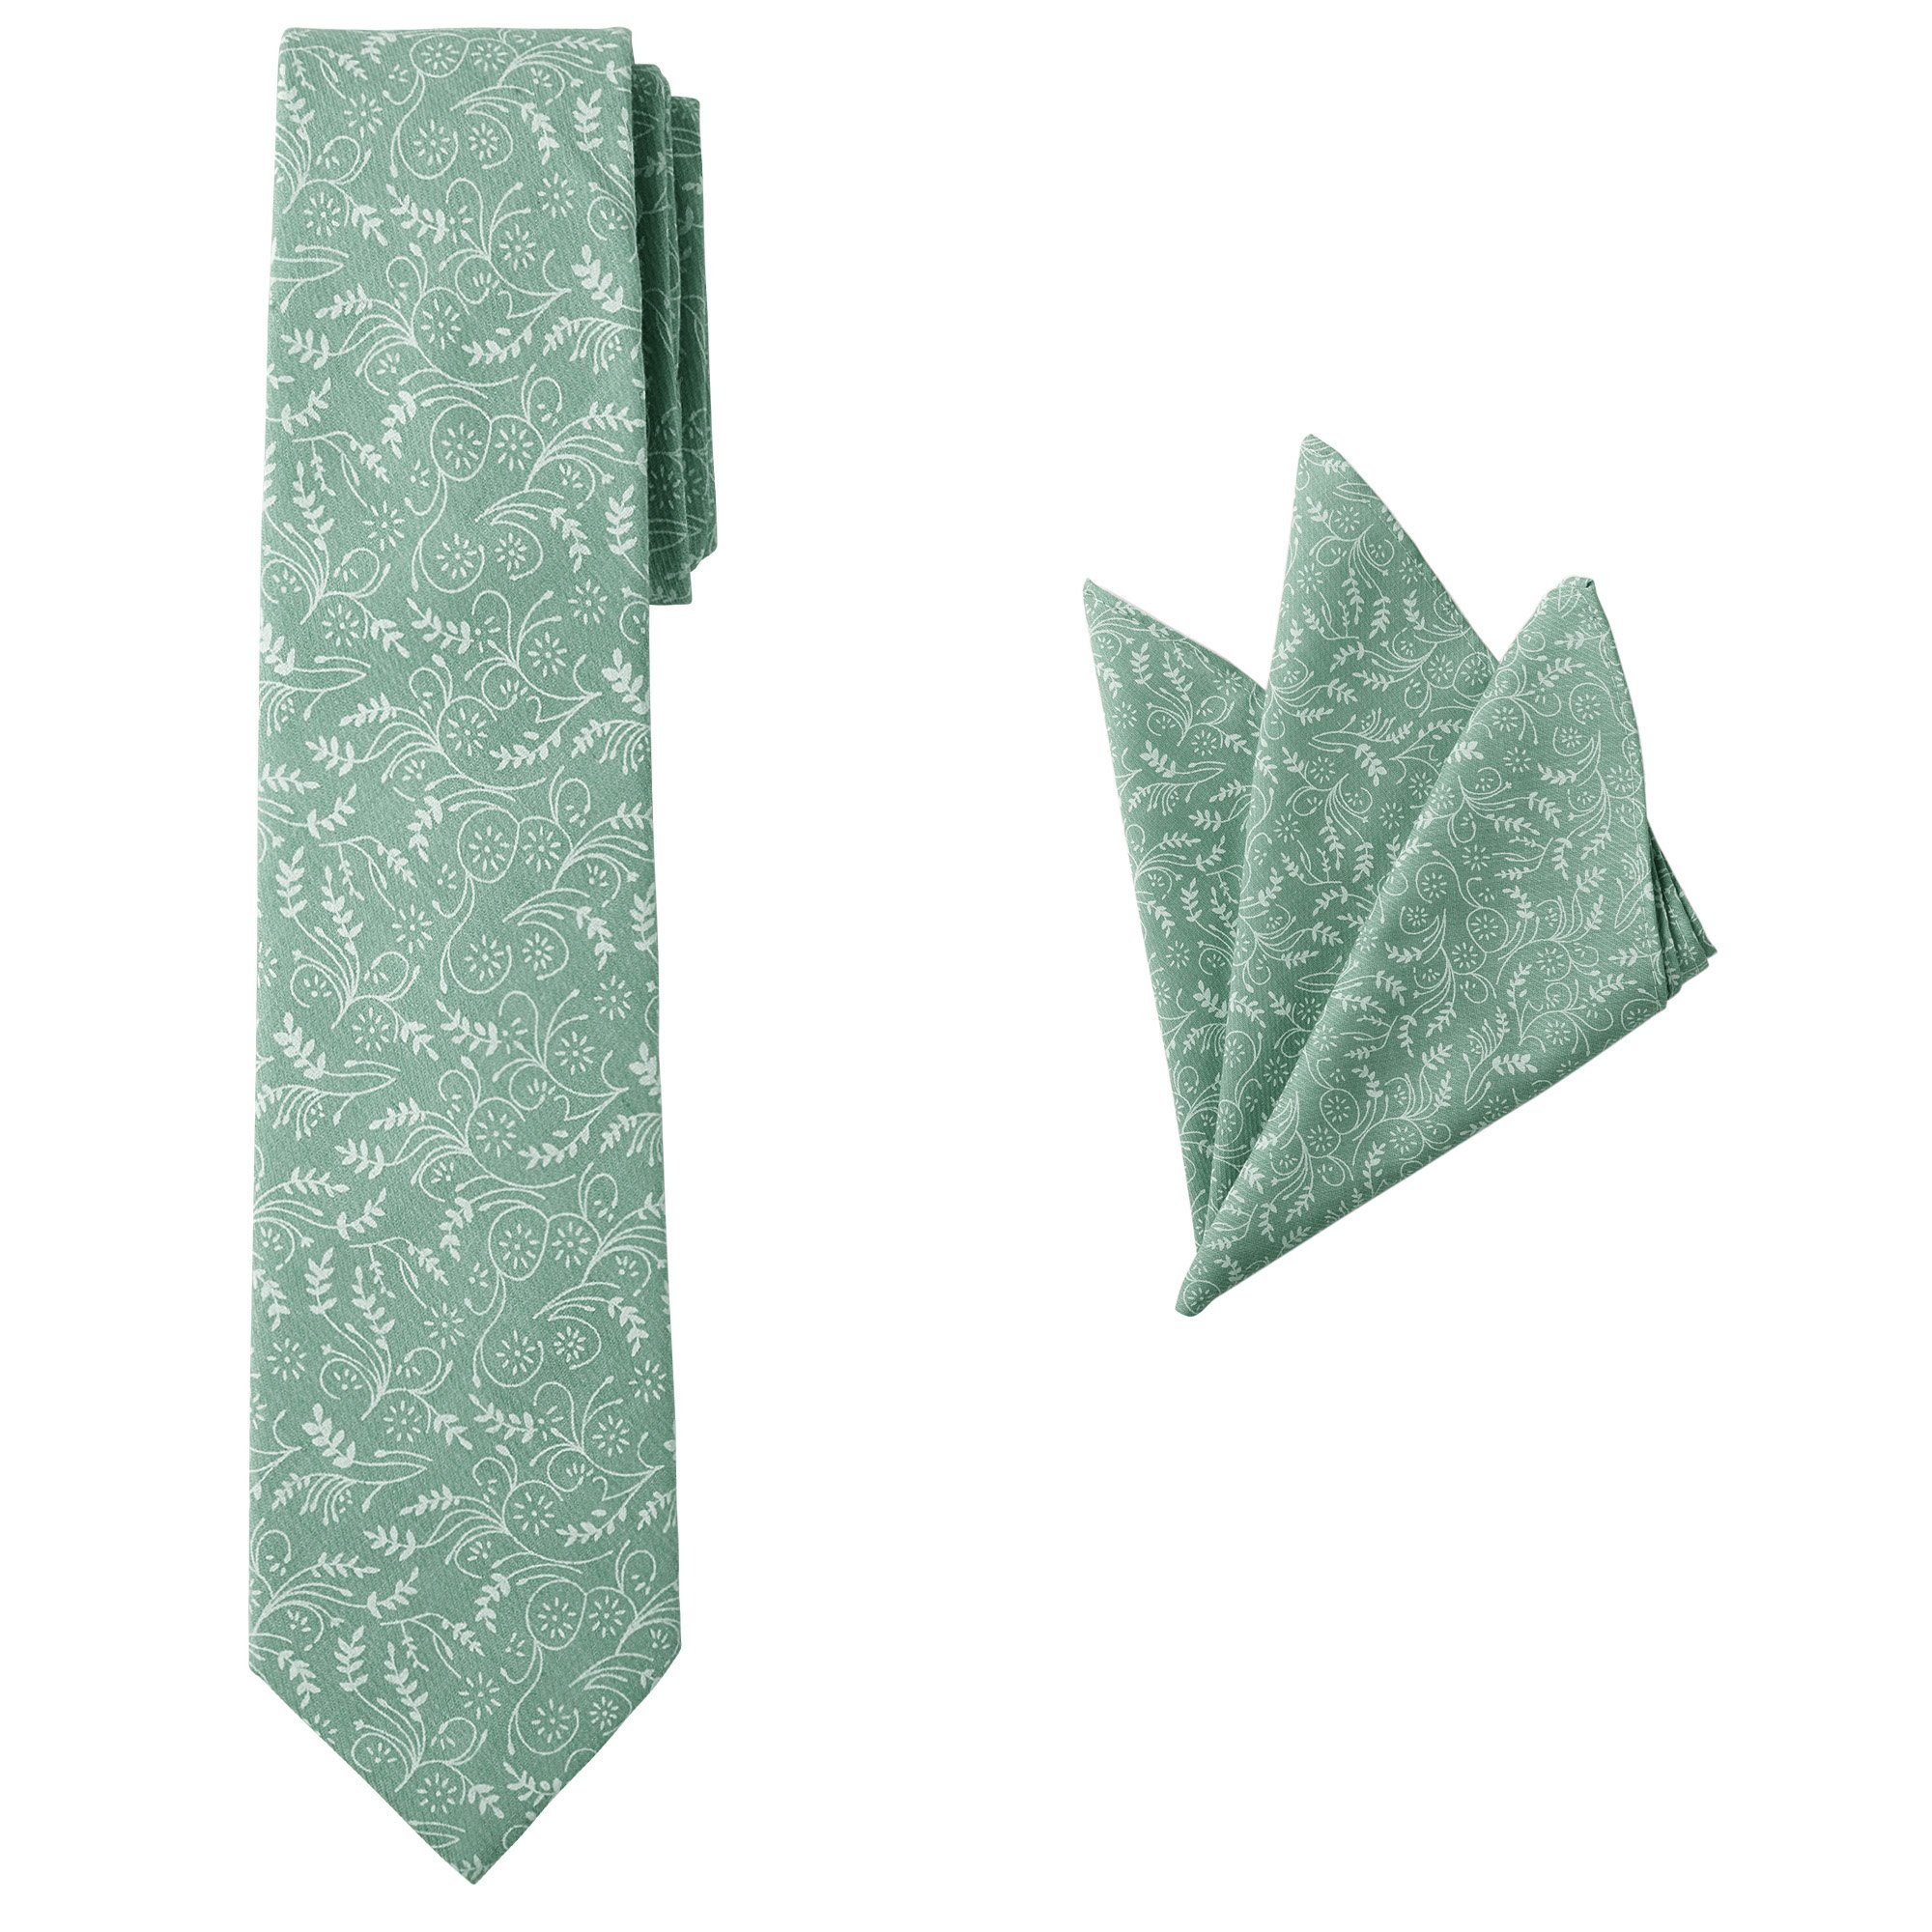 Jacob Alexander Matching Men's Floral Reg Neck Tie and Hanky - Dusty Sage